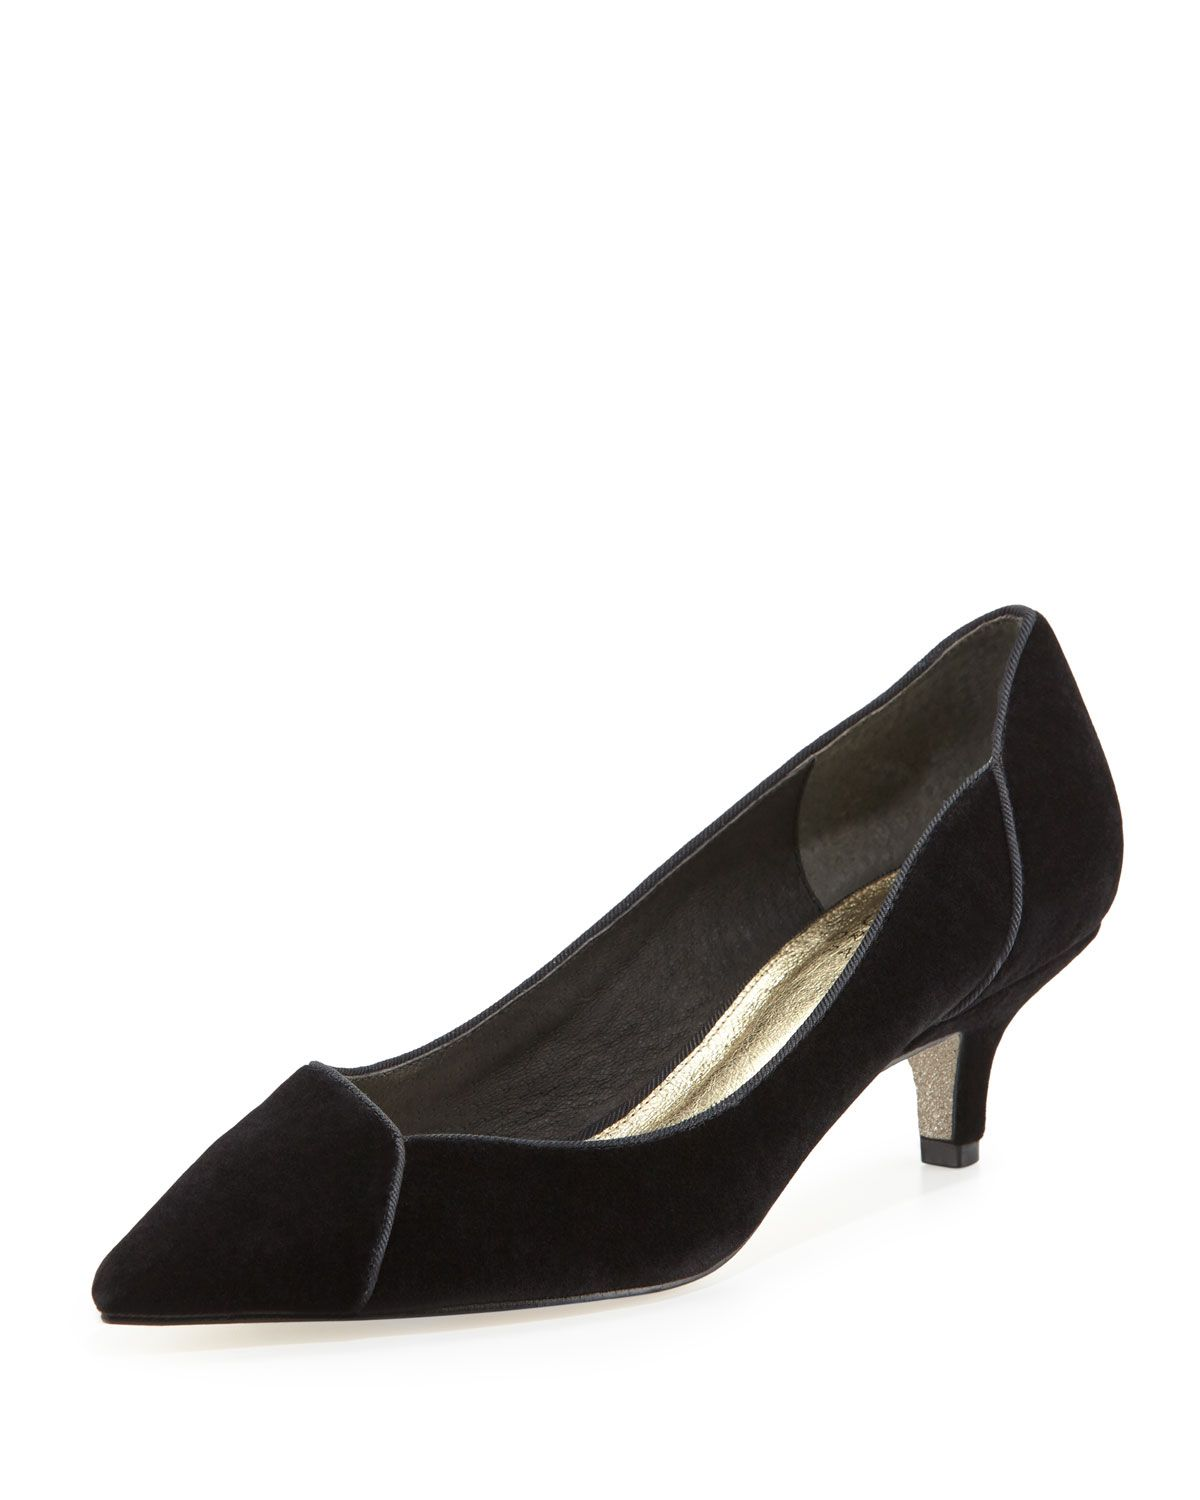 dbf7987c127 Lydia Velvet Low-Heel Evening Pump Black | *Costumes & Accessories ...